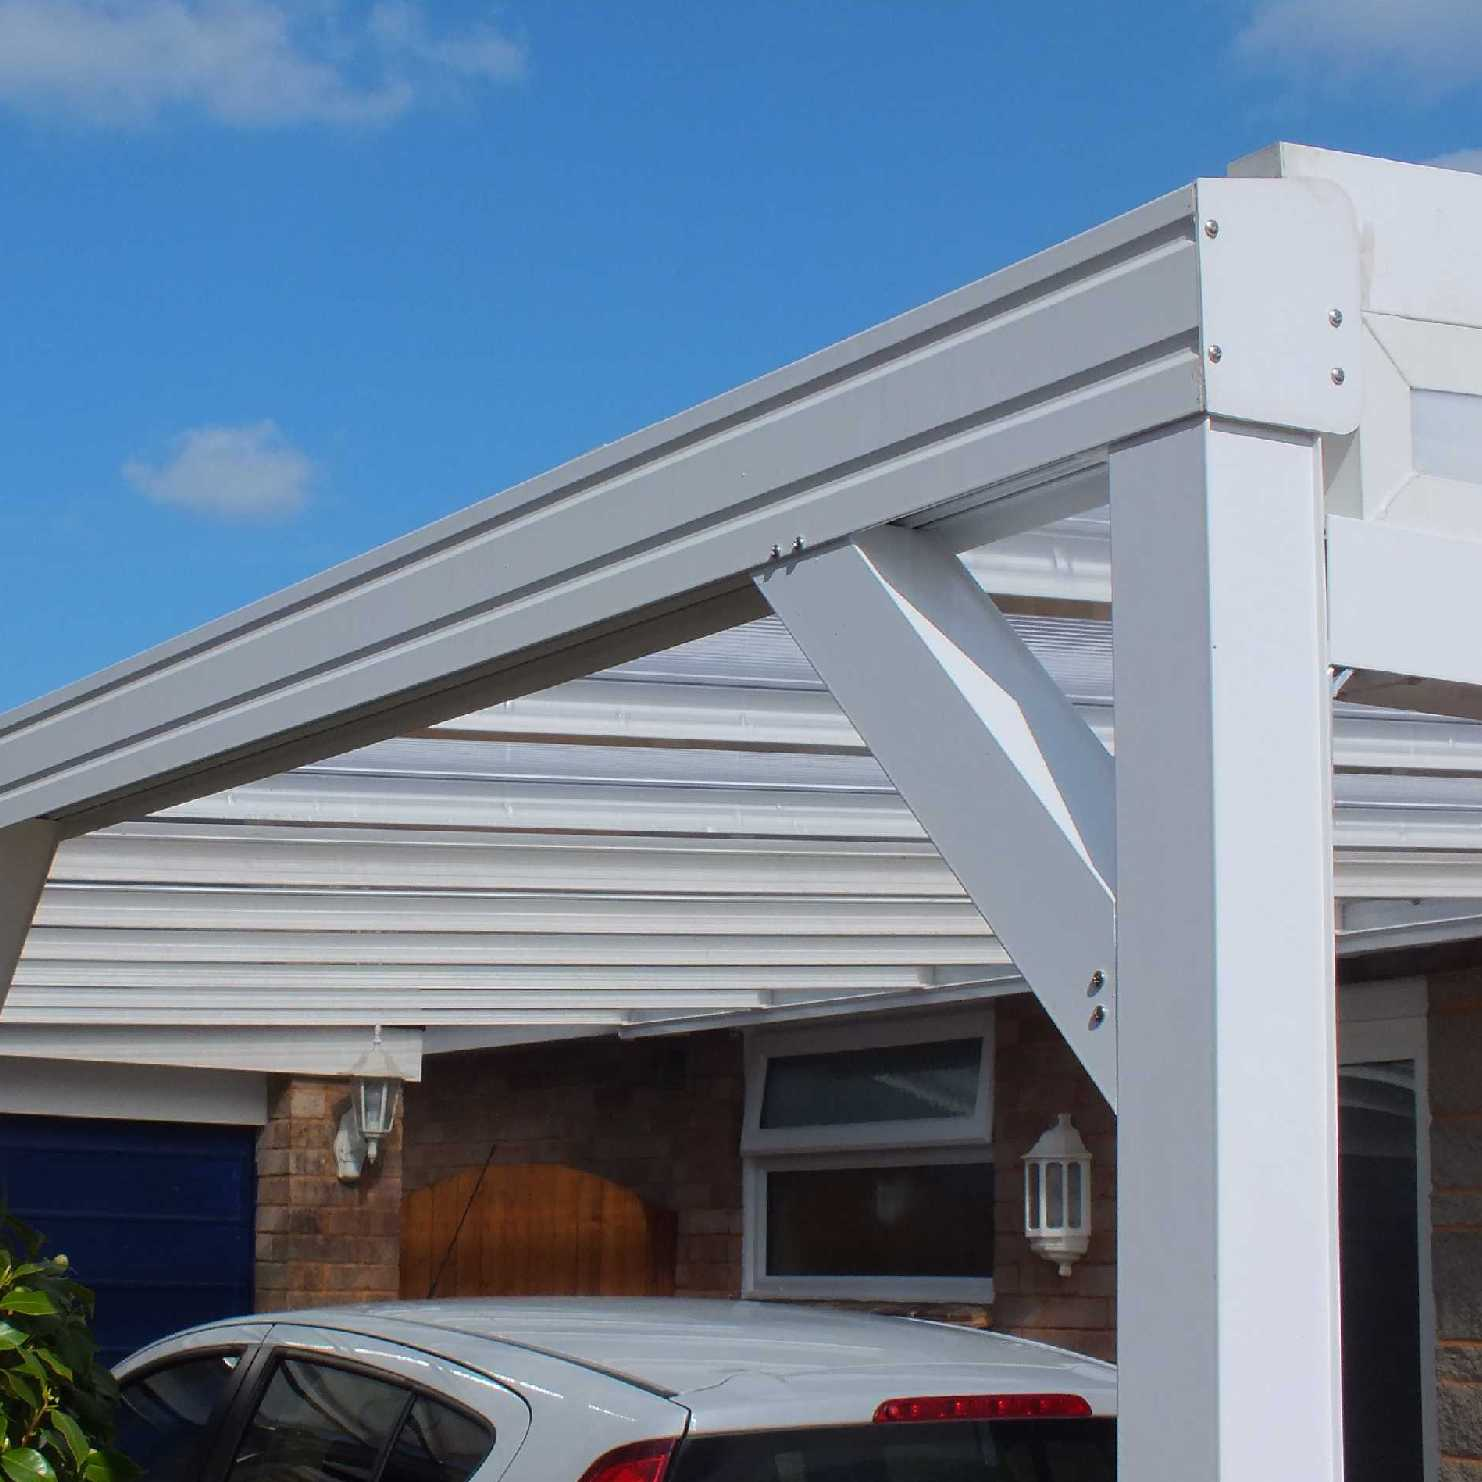 Buy Omega Smart White Lean-To Canopy with 16mm Polycarbonate Glazing - 9.2m (W) x 4.0m (P), (5) Supporting Posts online today